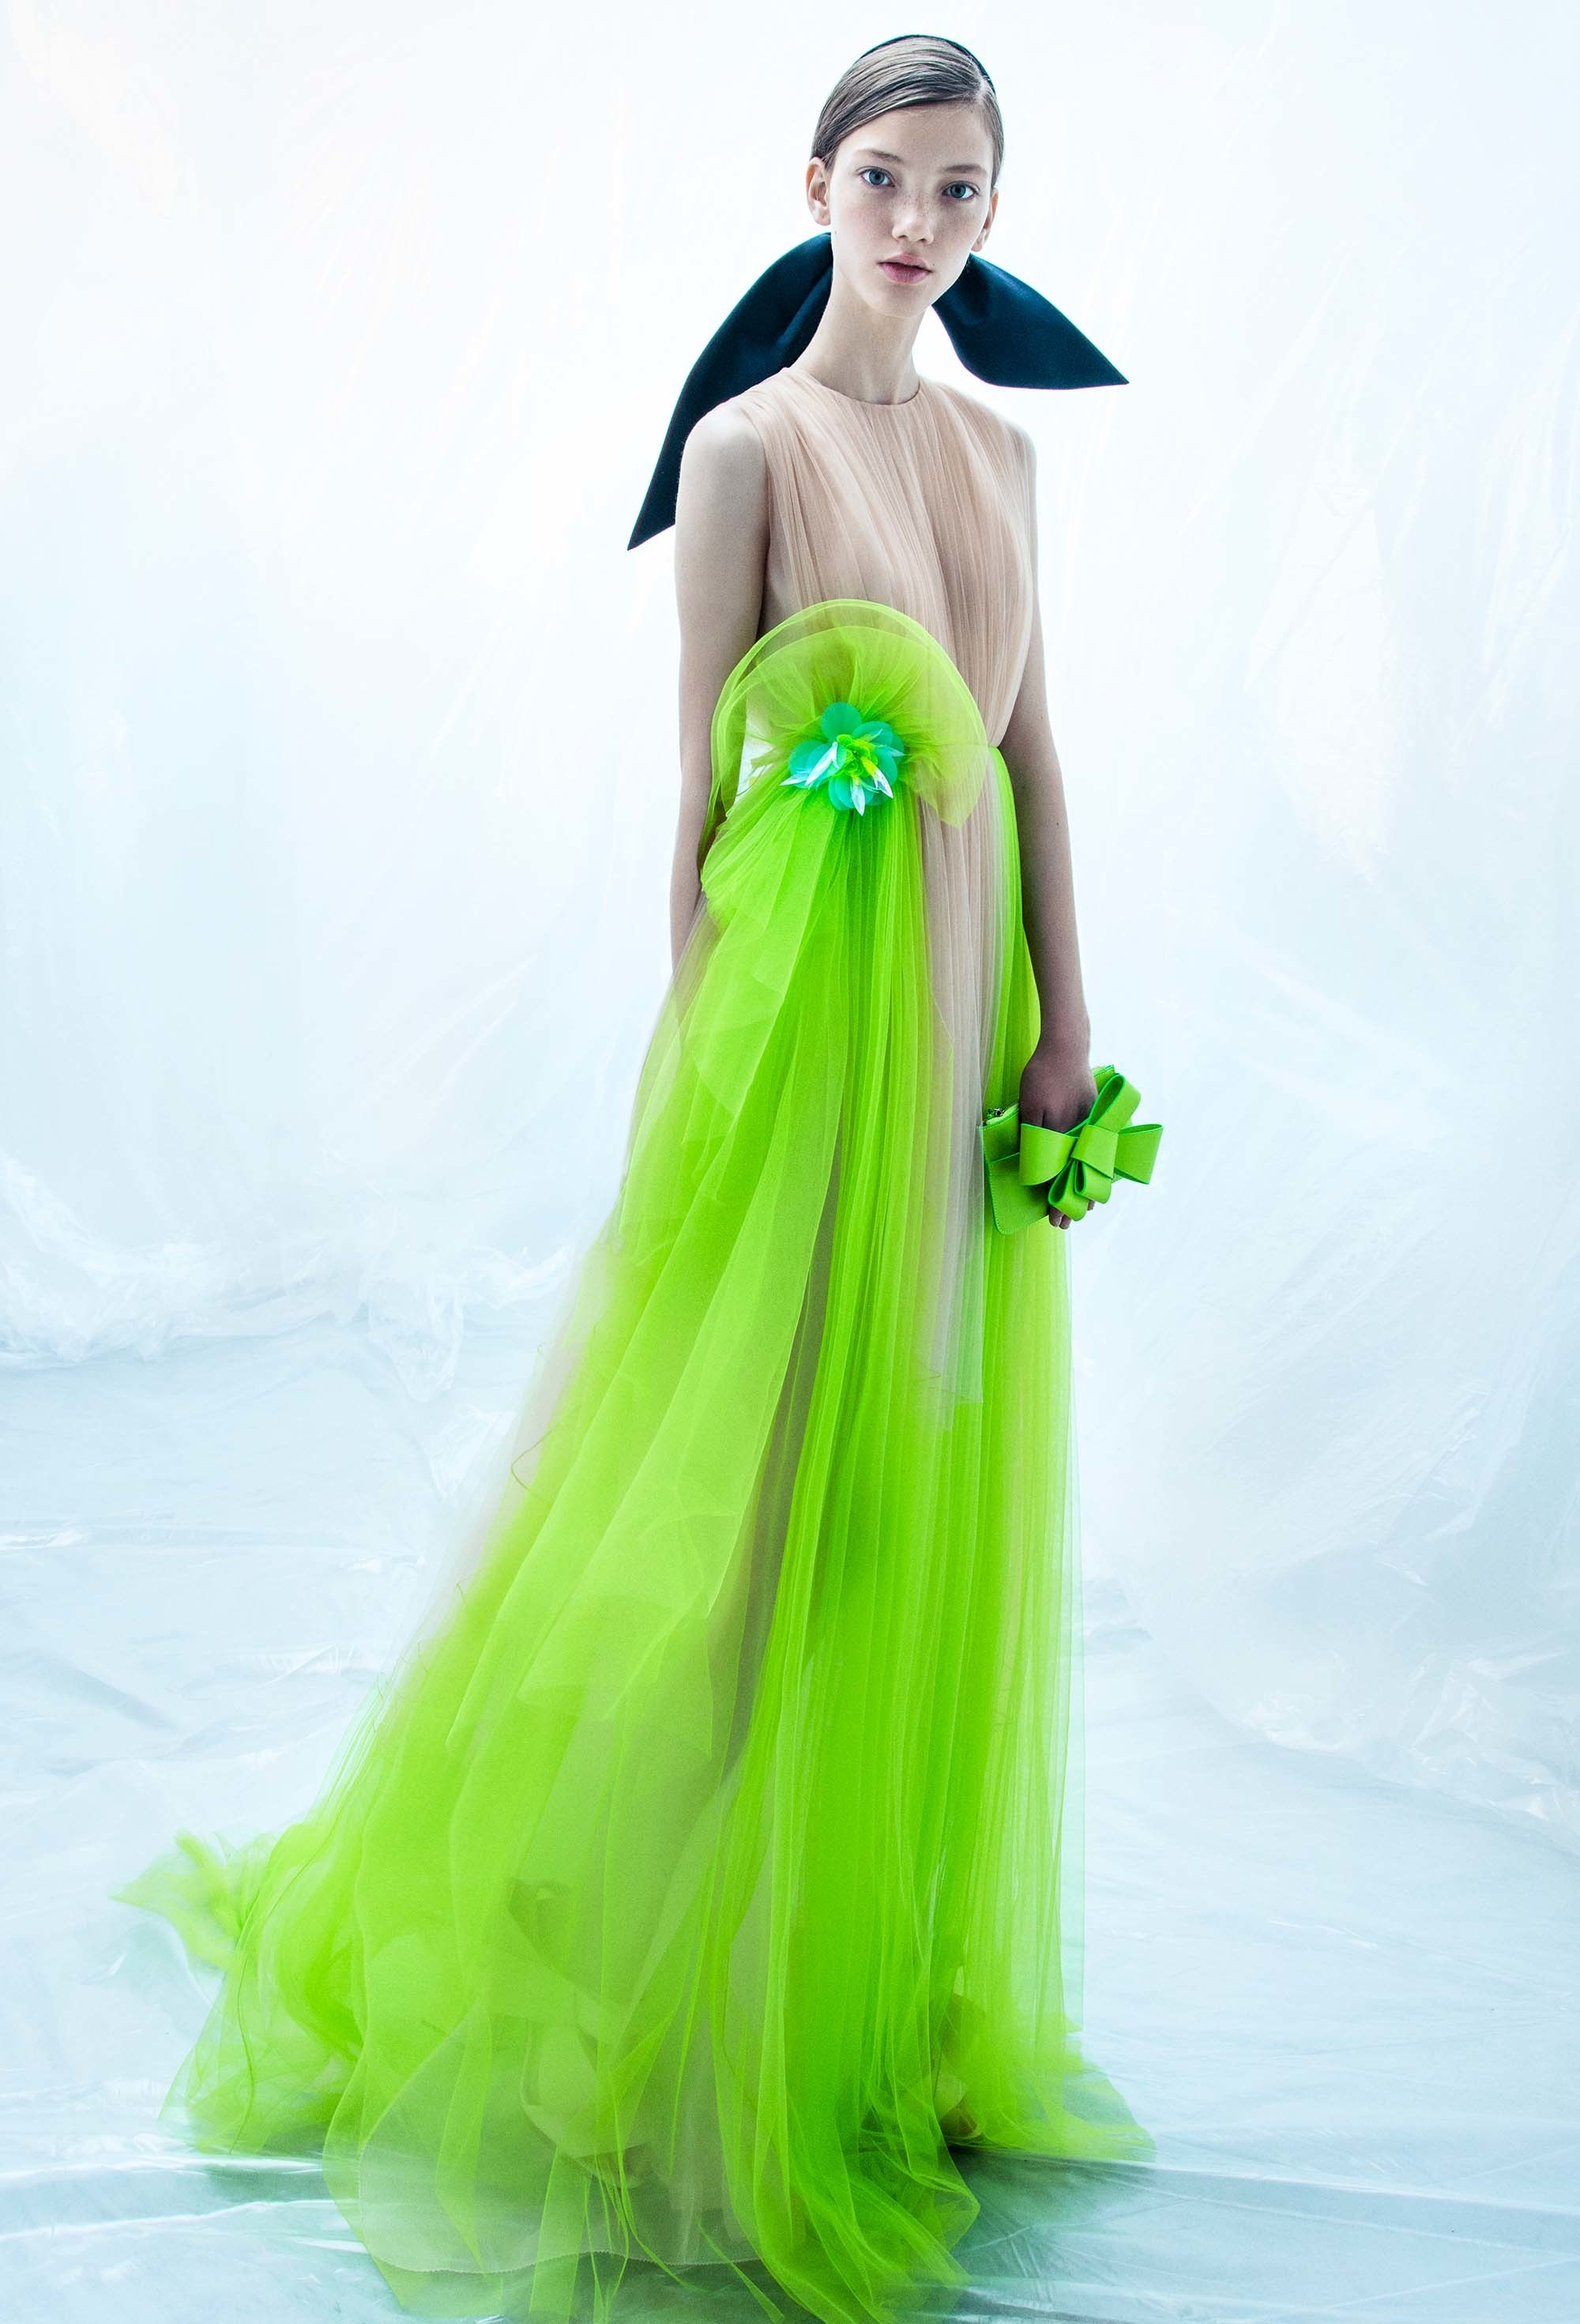 Delpozo dress resort collection lime green dress